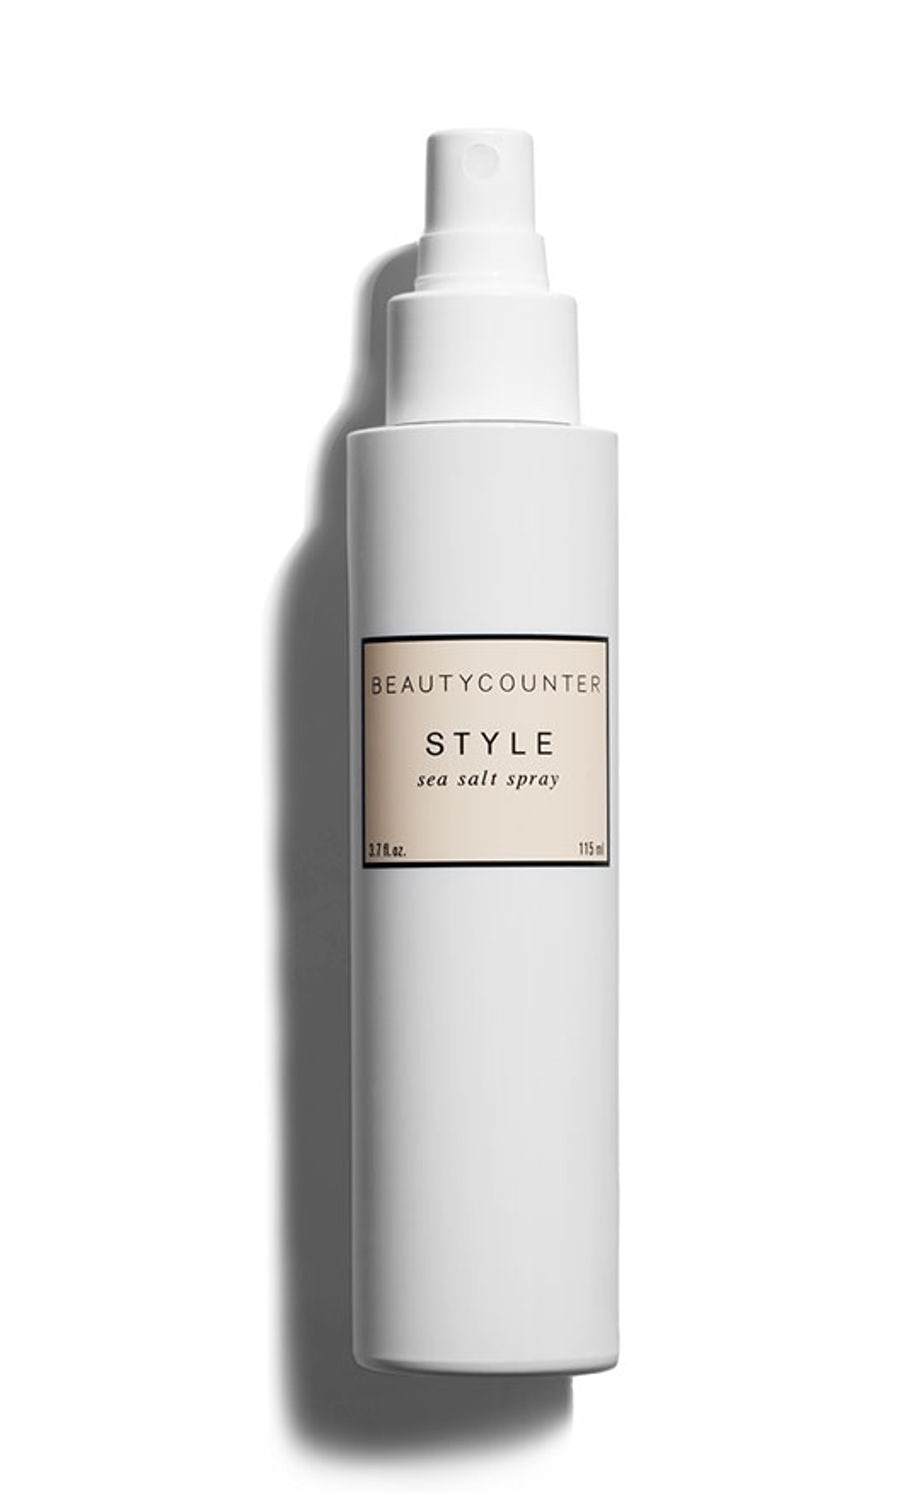 Sea salt spray beauty counter beauty products the wardrobe consultant